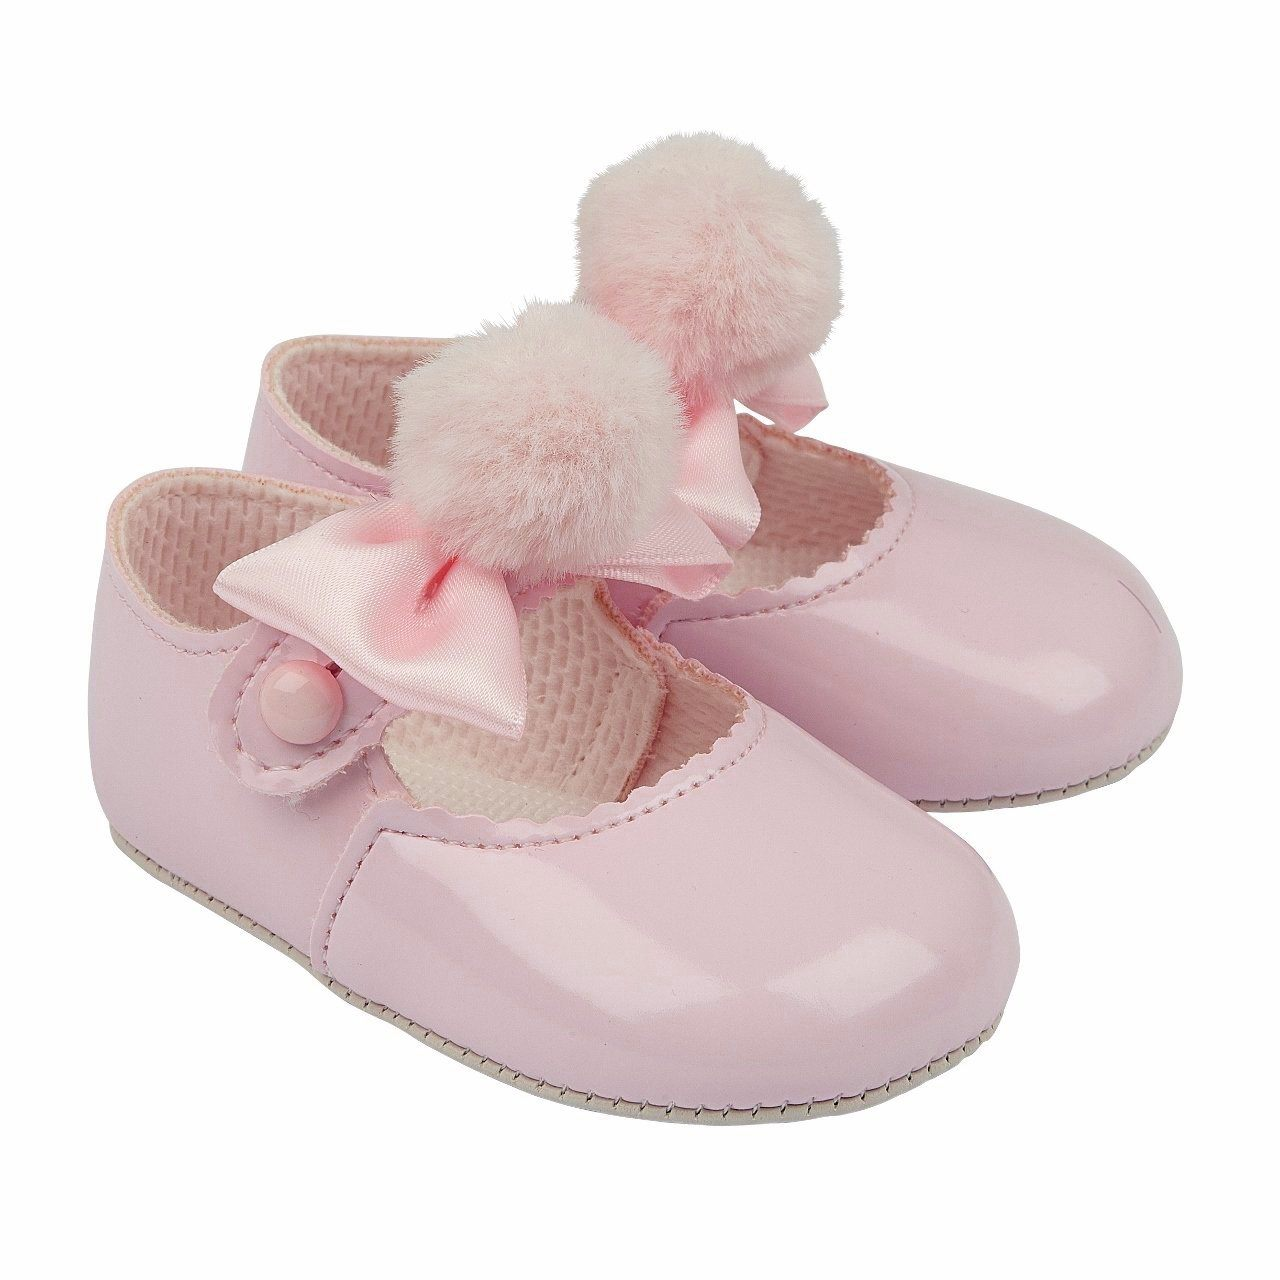 Baypods Pink Pom Pom Soft Sole Shoes | Millie and John